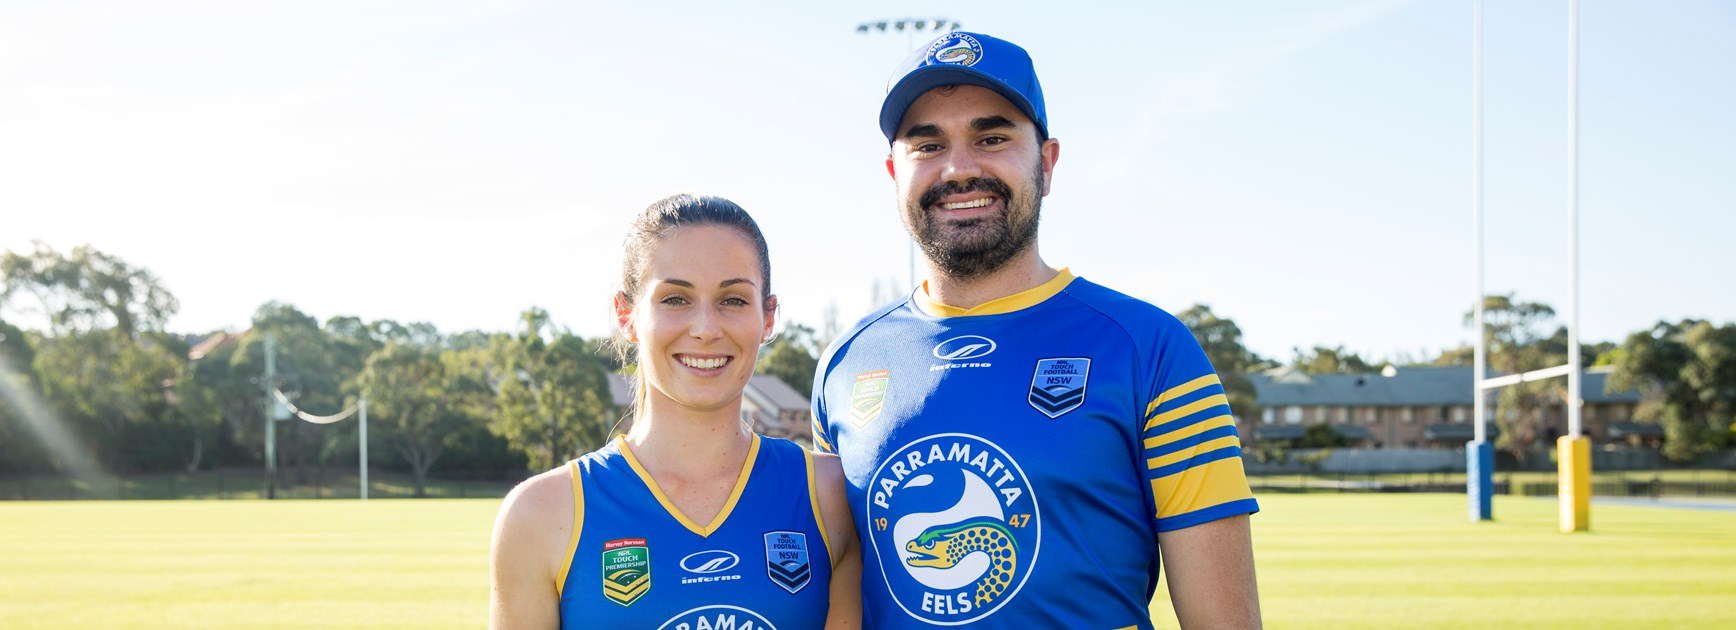 Eels to launch Touch Premiership this week against Wests Tigers